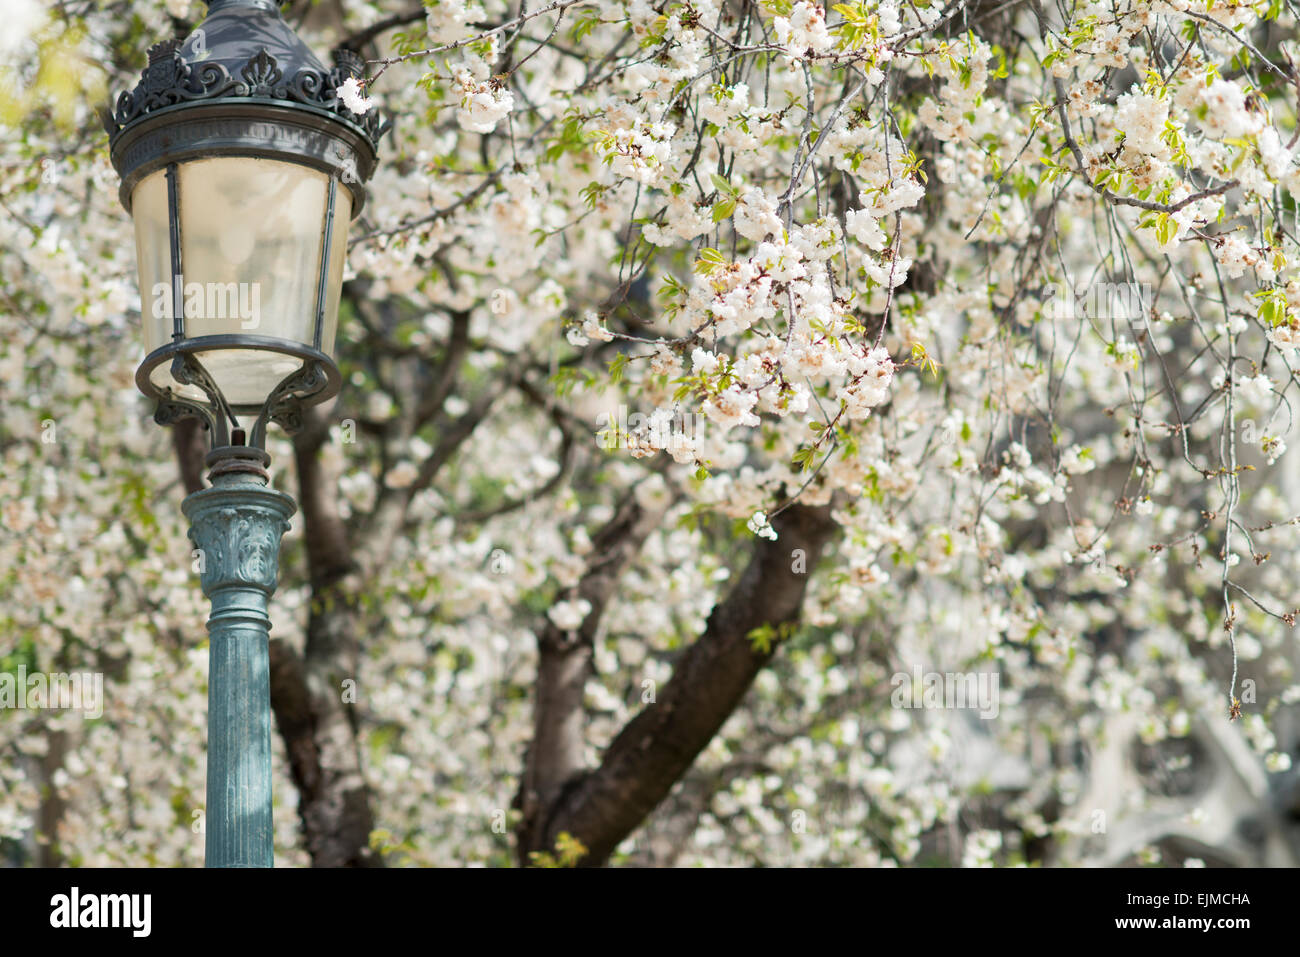 Mount Fuji cherry trees blooming in front of Notre Dame Cathedral in Paris, France - Stock Image